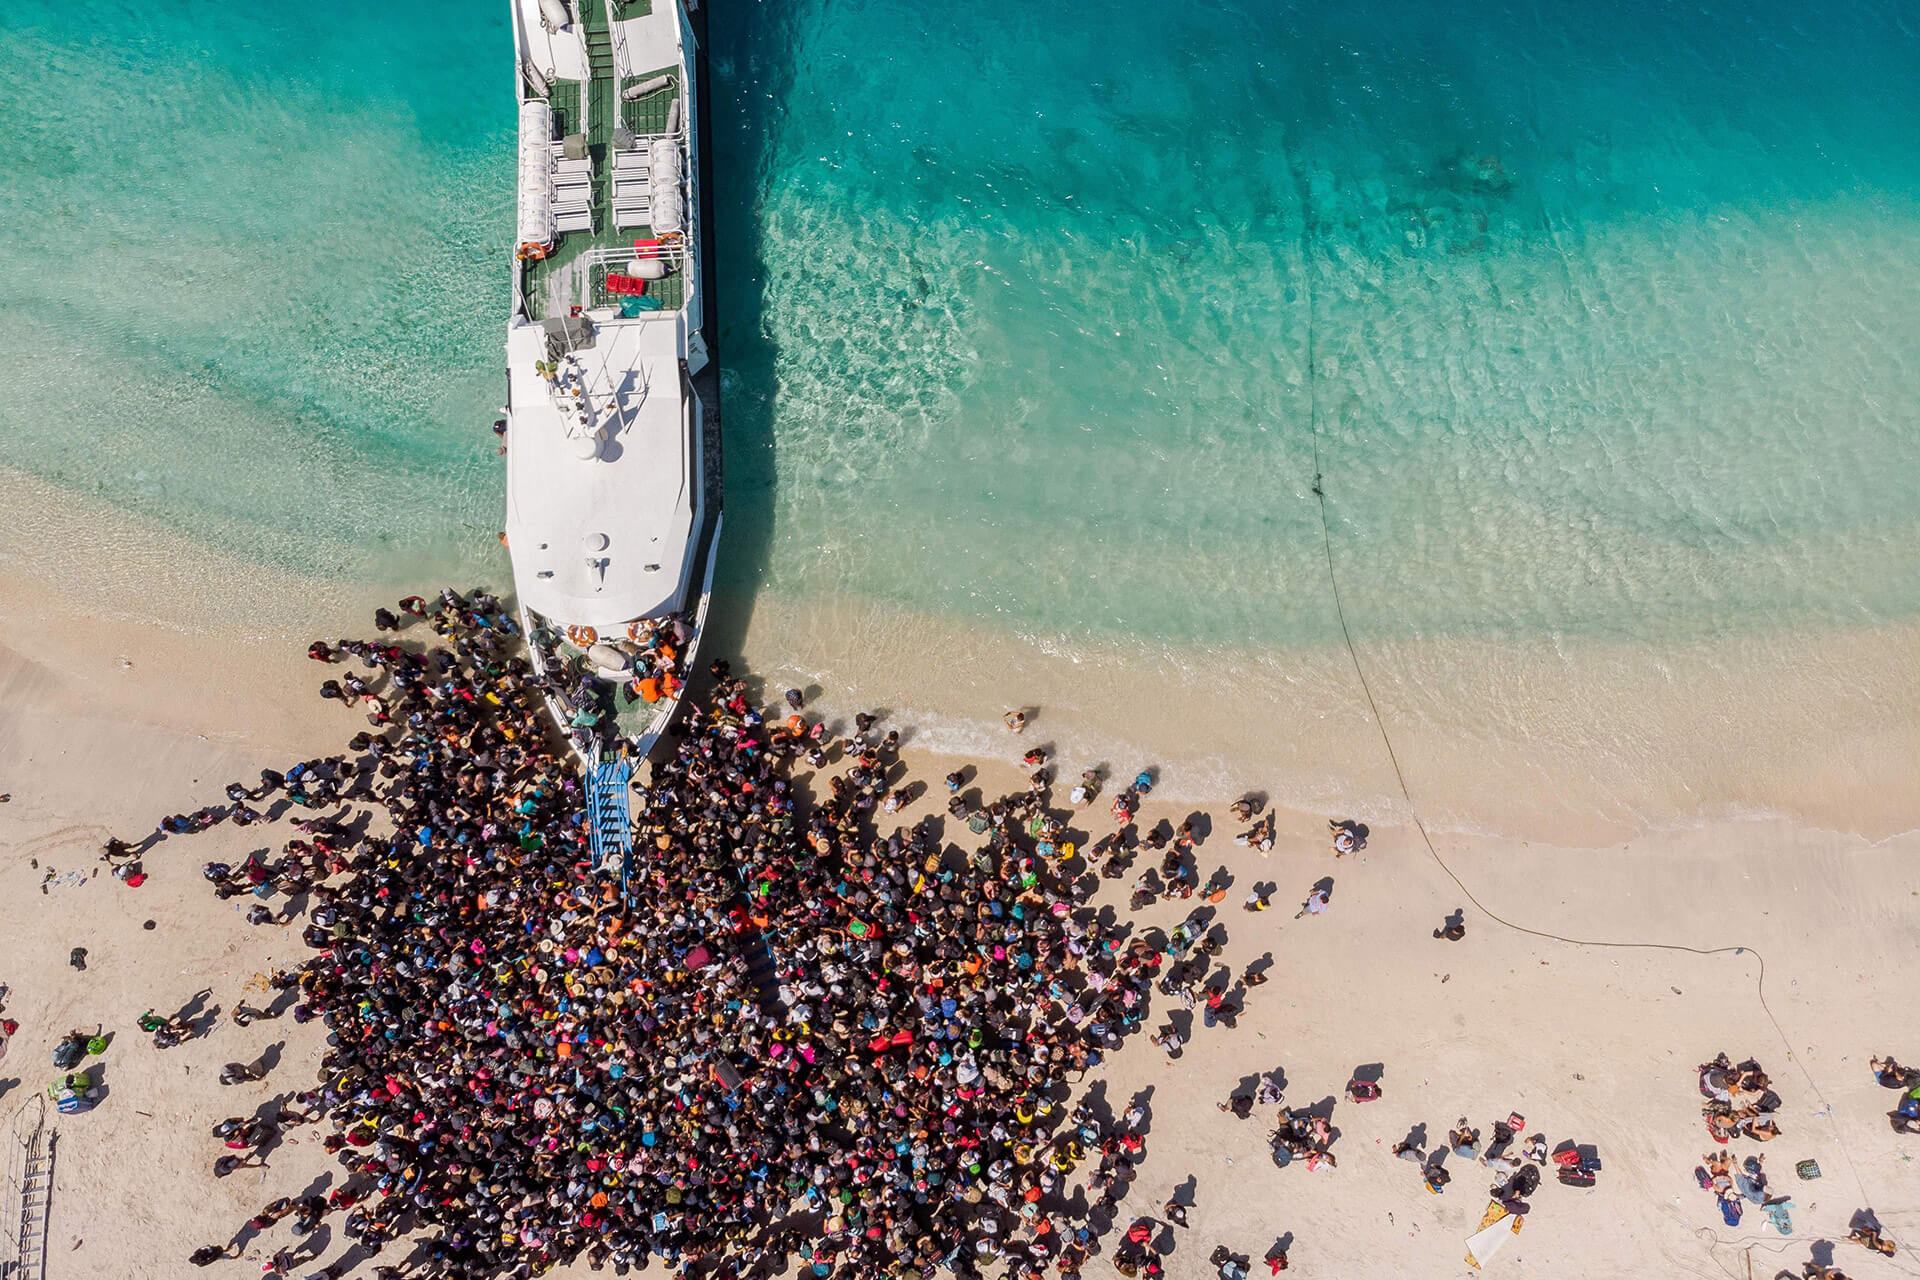 A crowd waits to be evacuated from Gili Trawangan island in Indonesia